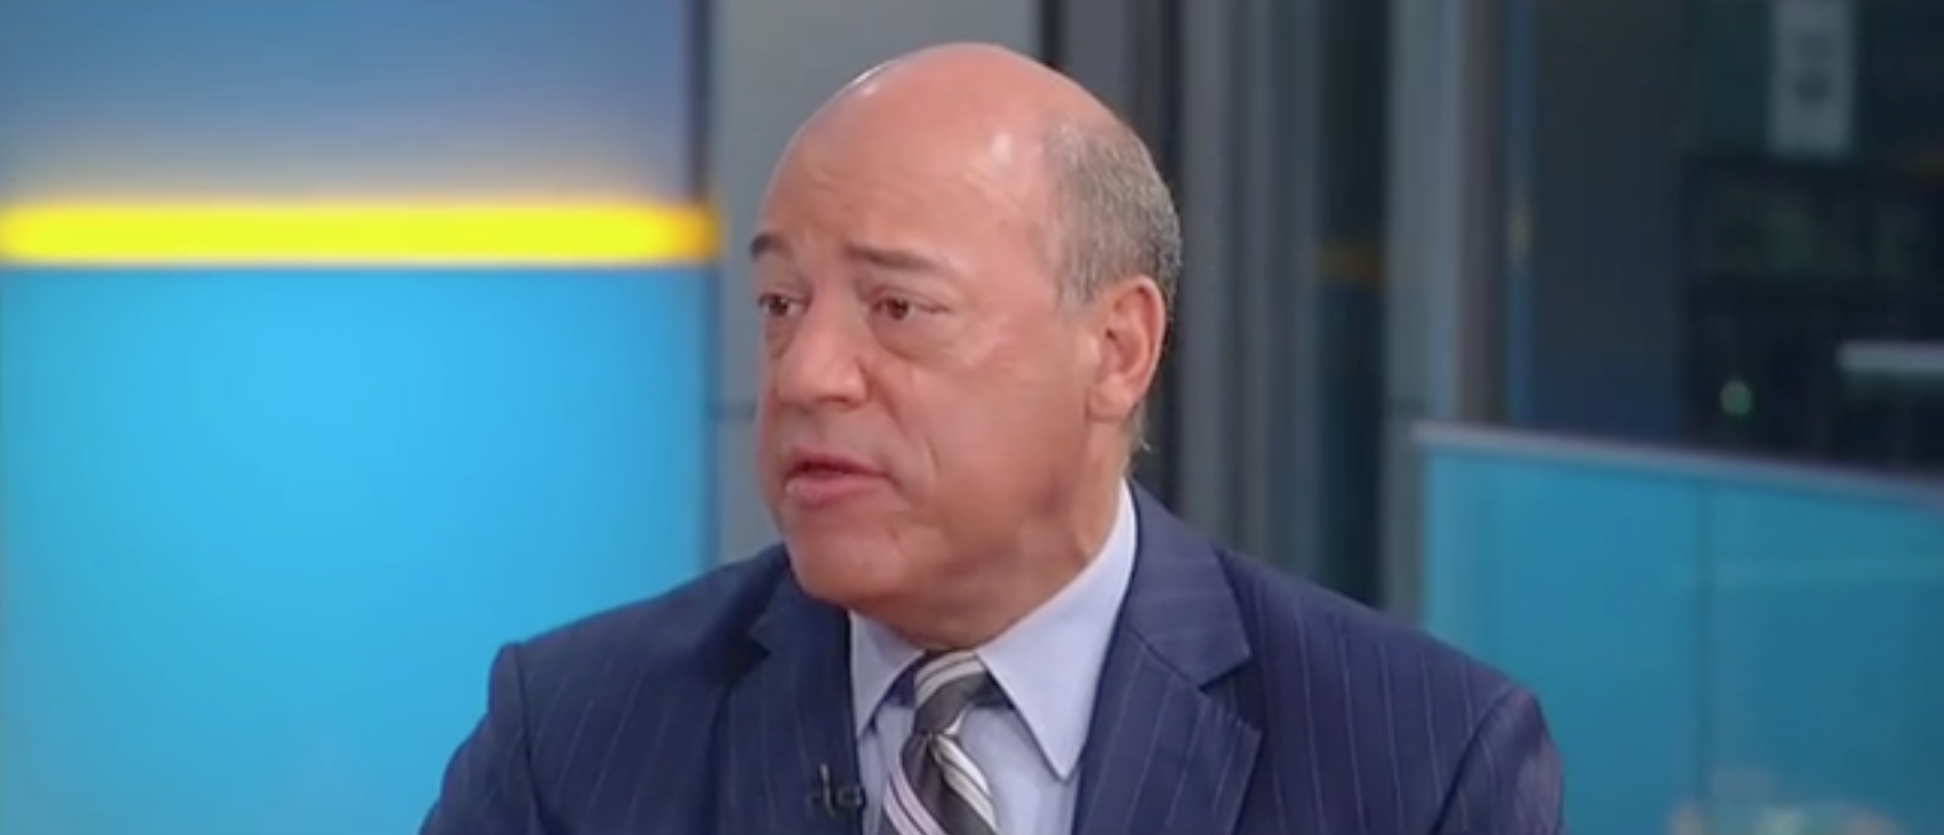 Ari Fleischer Fires Back At MSNBC Analyst Who Called Comey A Modern-Day Paul Revere